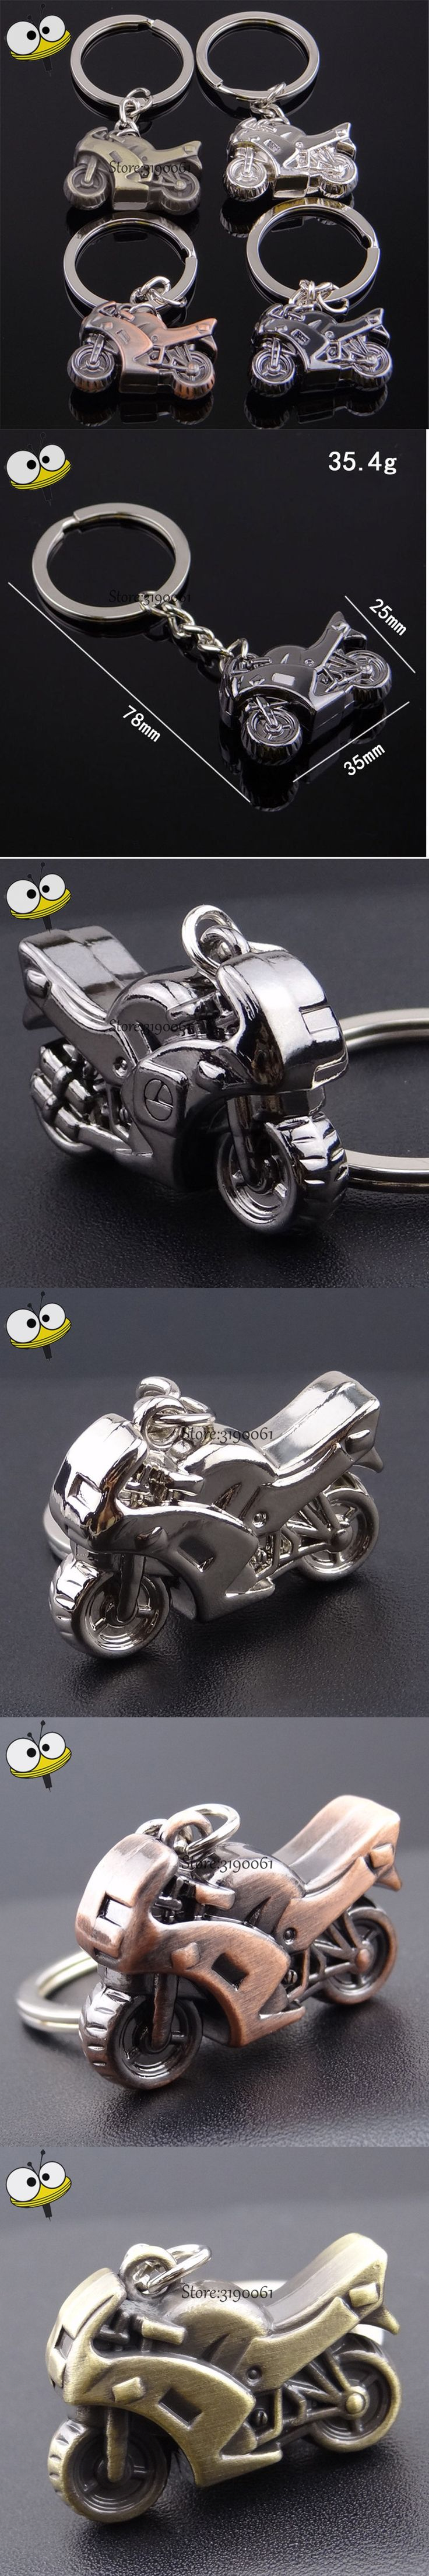 Fashion 3D Metal Motorcycle Keychain Car Key Ring Key Holder Car Styling  For Vauxhall Suzuki Ford